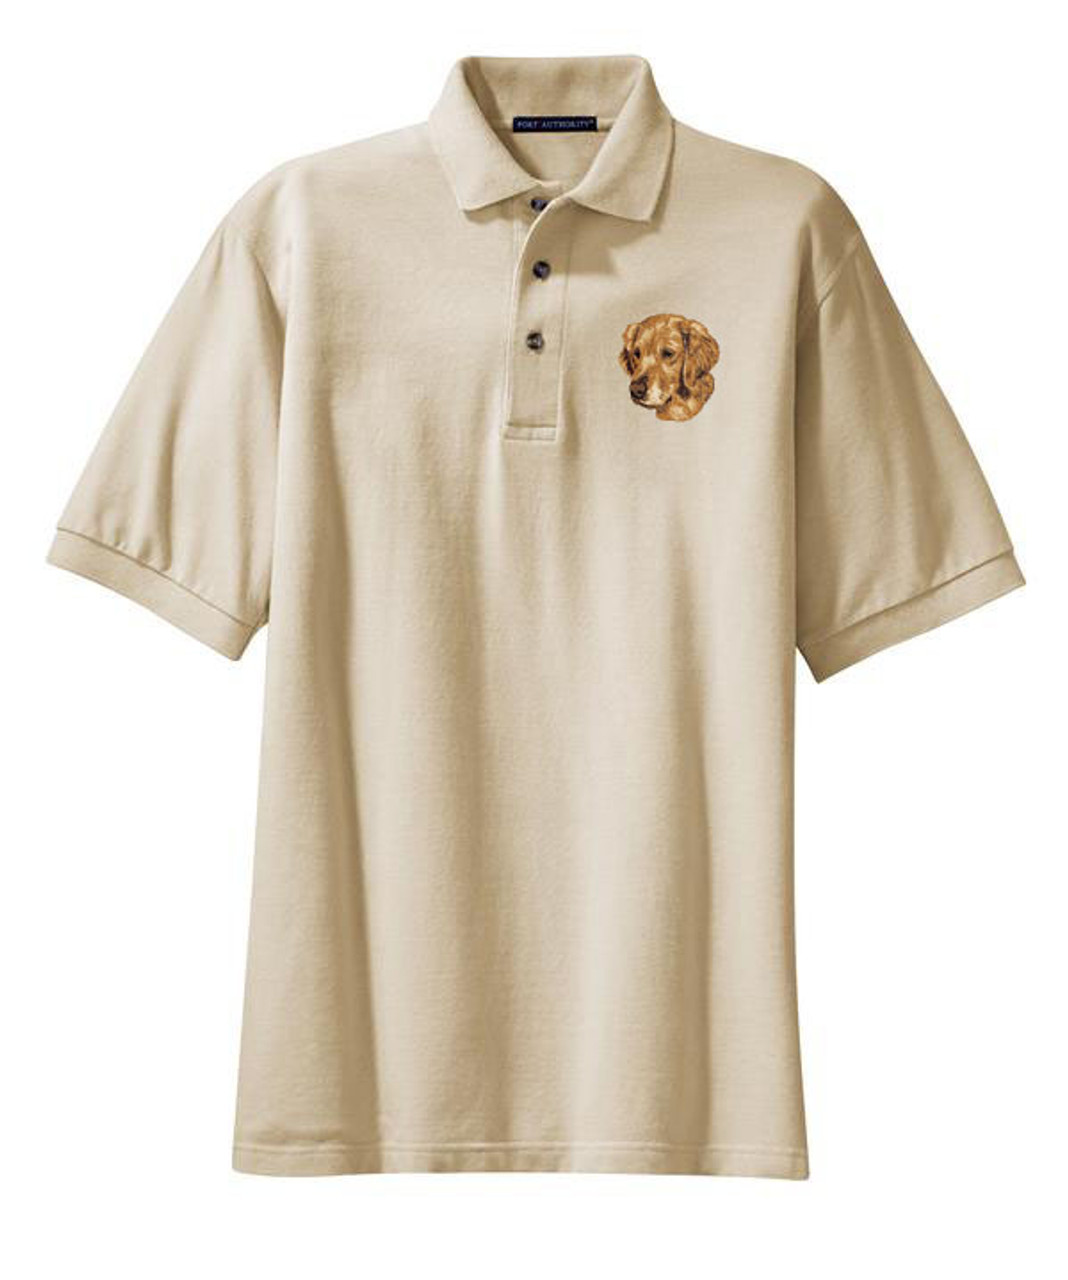 Golden Retriever Embroidered /& Personalised Polo Shirt Dog